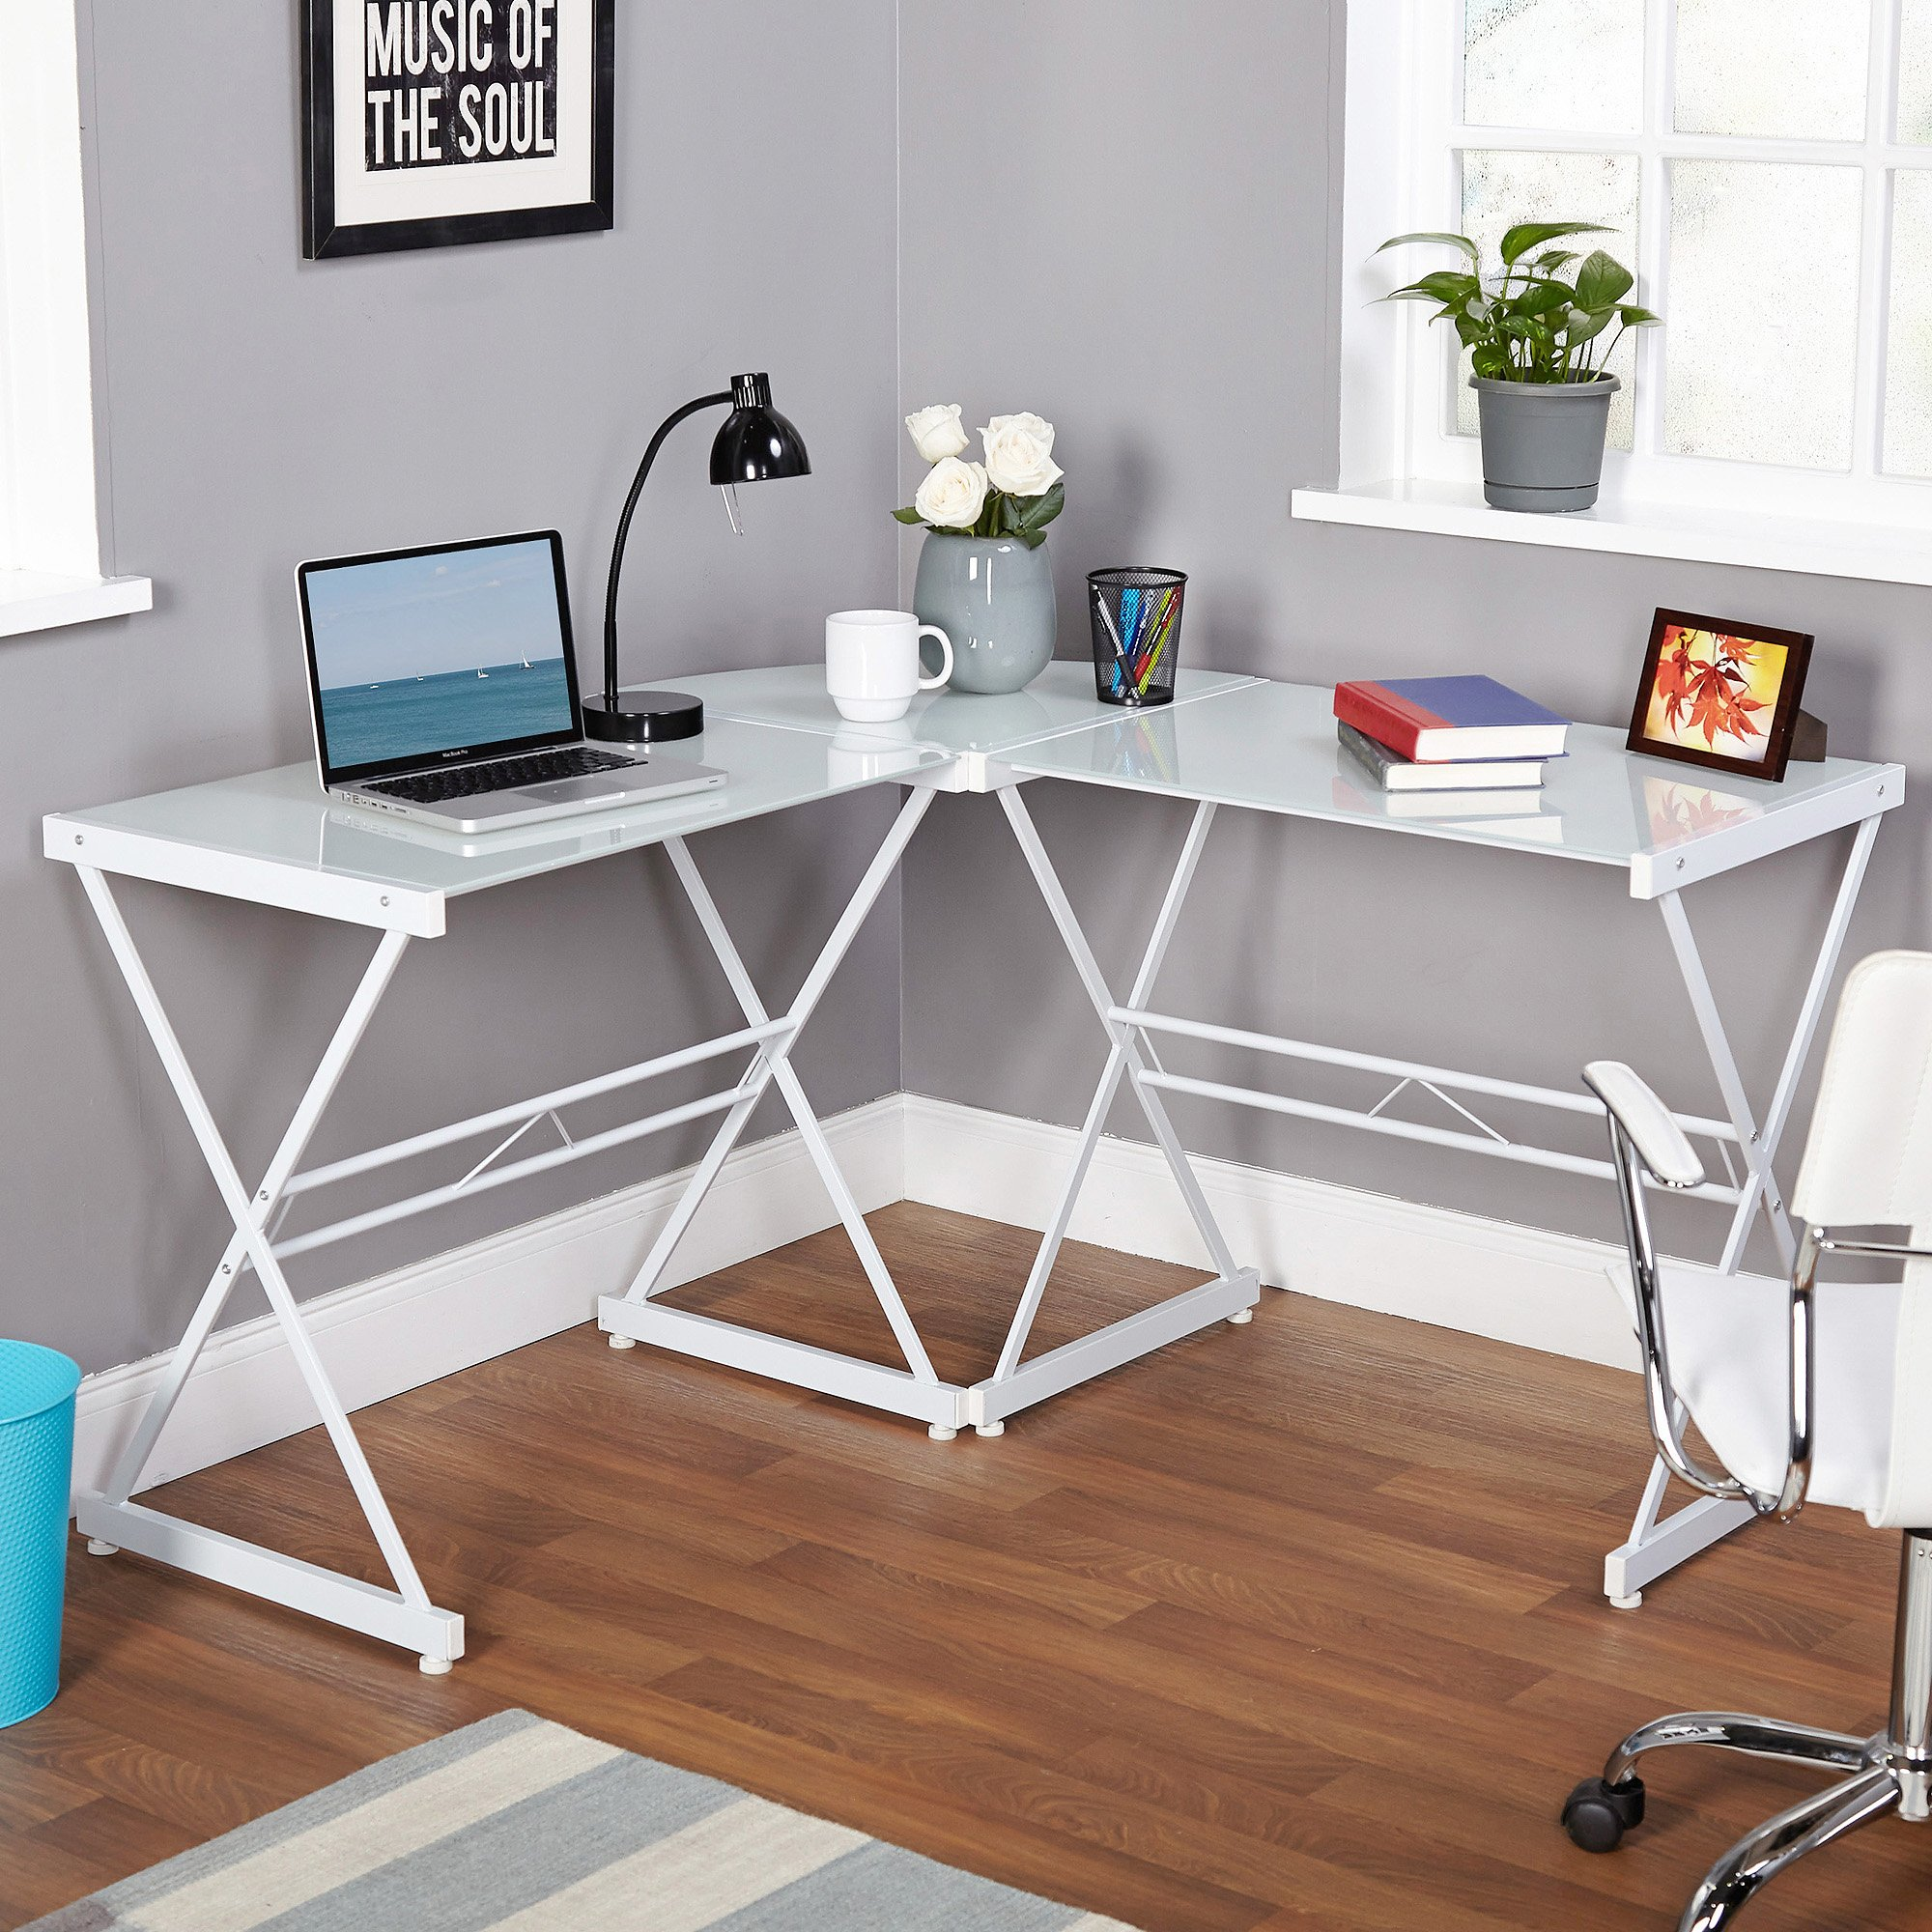 Classy Atrium Metal and Glass L-shaped Computer Desk, Durable Tempered Glass and Sturdy Metal Frame, Elegant Addition to Home and Office Furniture, Multiple Colors (L: 51.00 x W: 51.00 x H: 29.00 in) by TMS (Image #3)